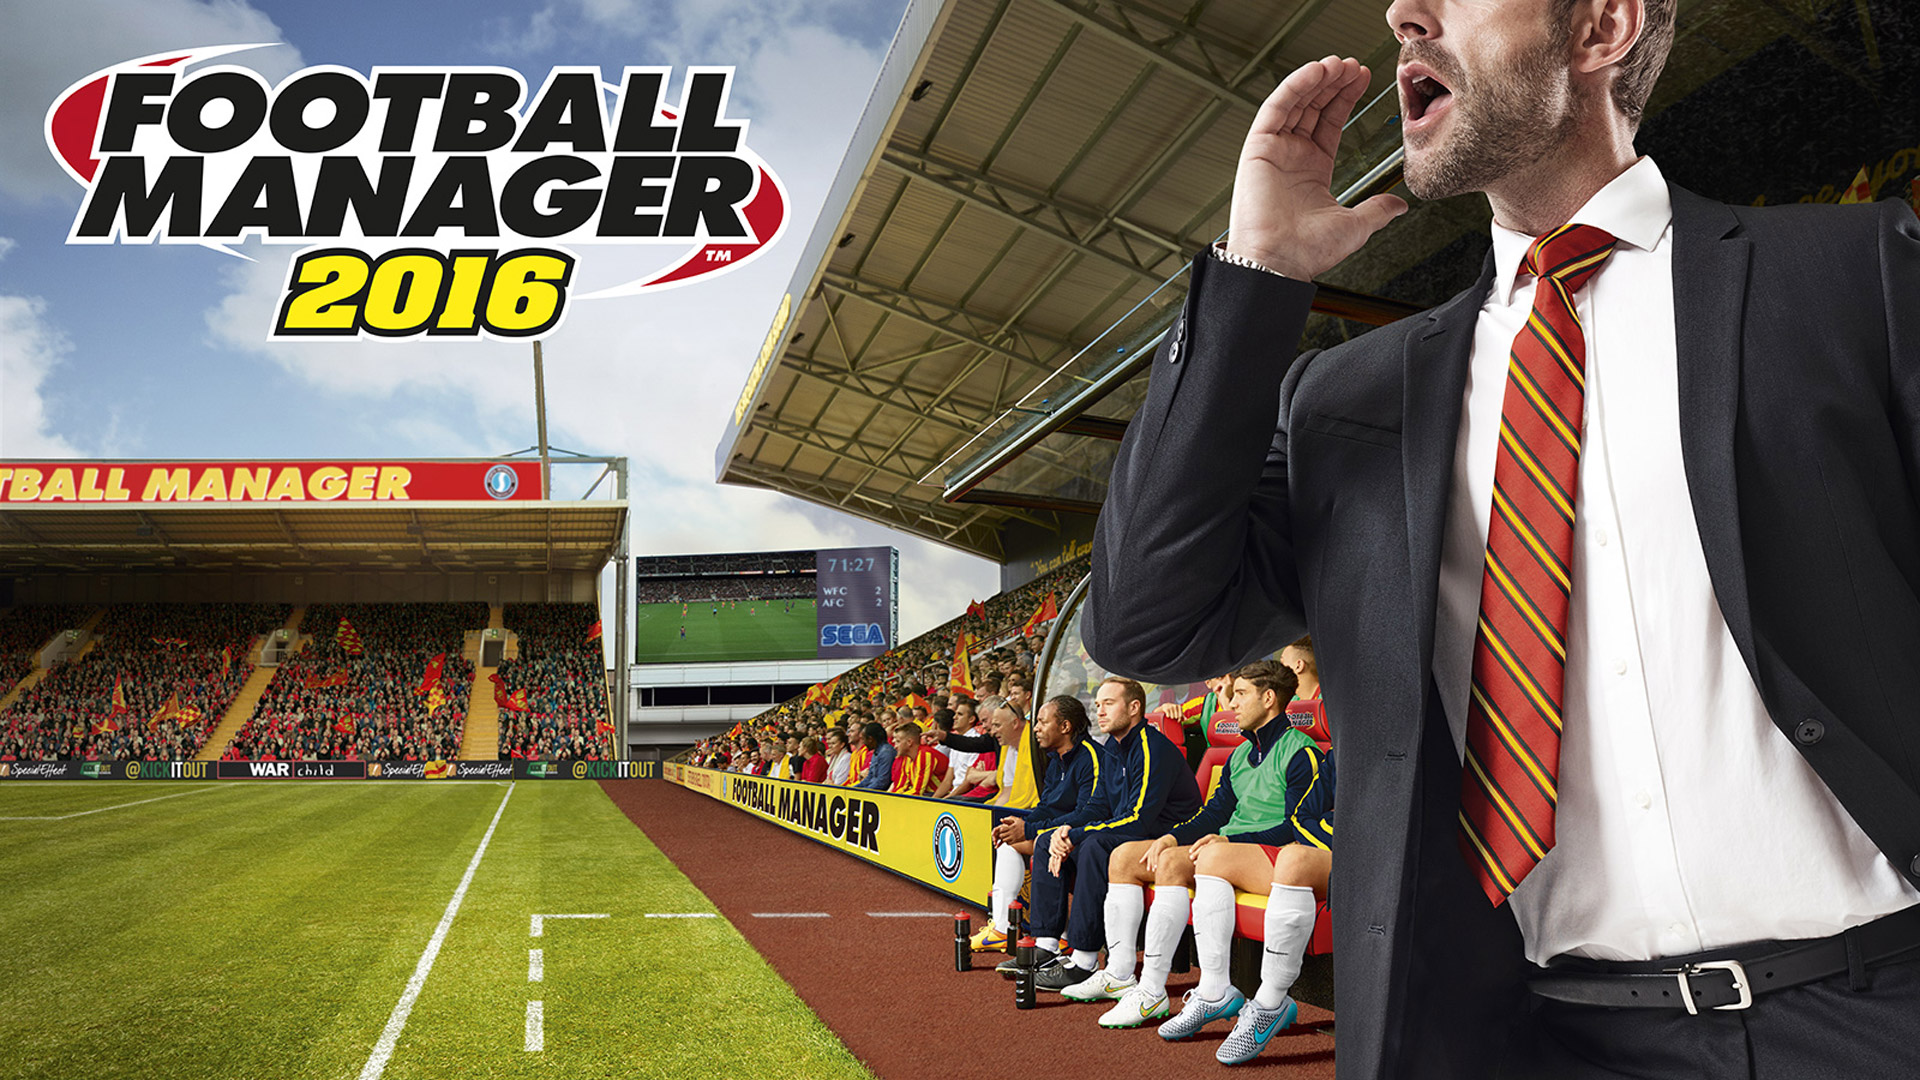 Free Football Manager 2016 Wallpaper in 1920x1080